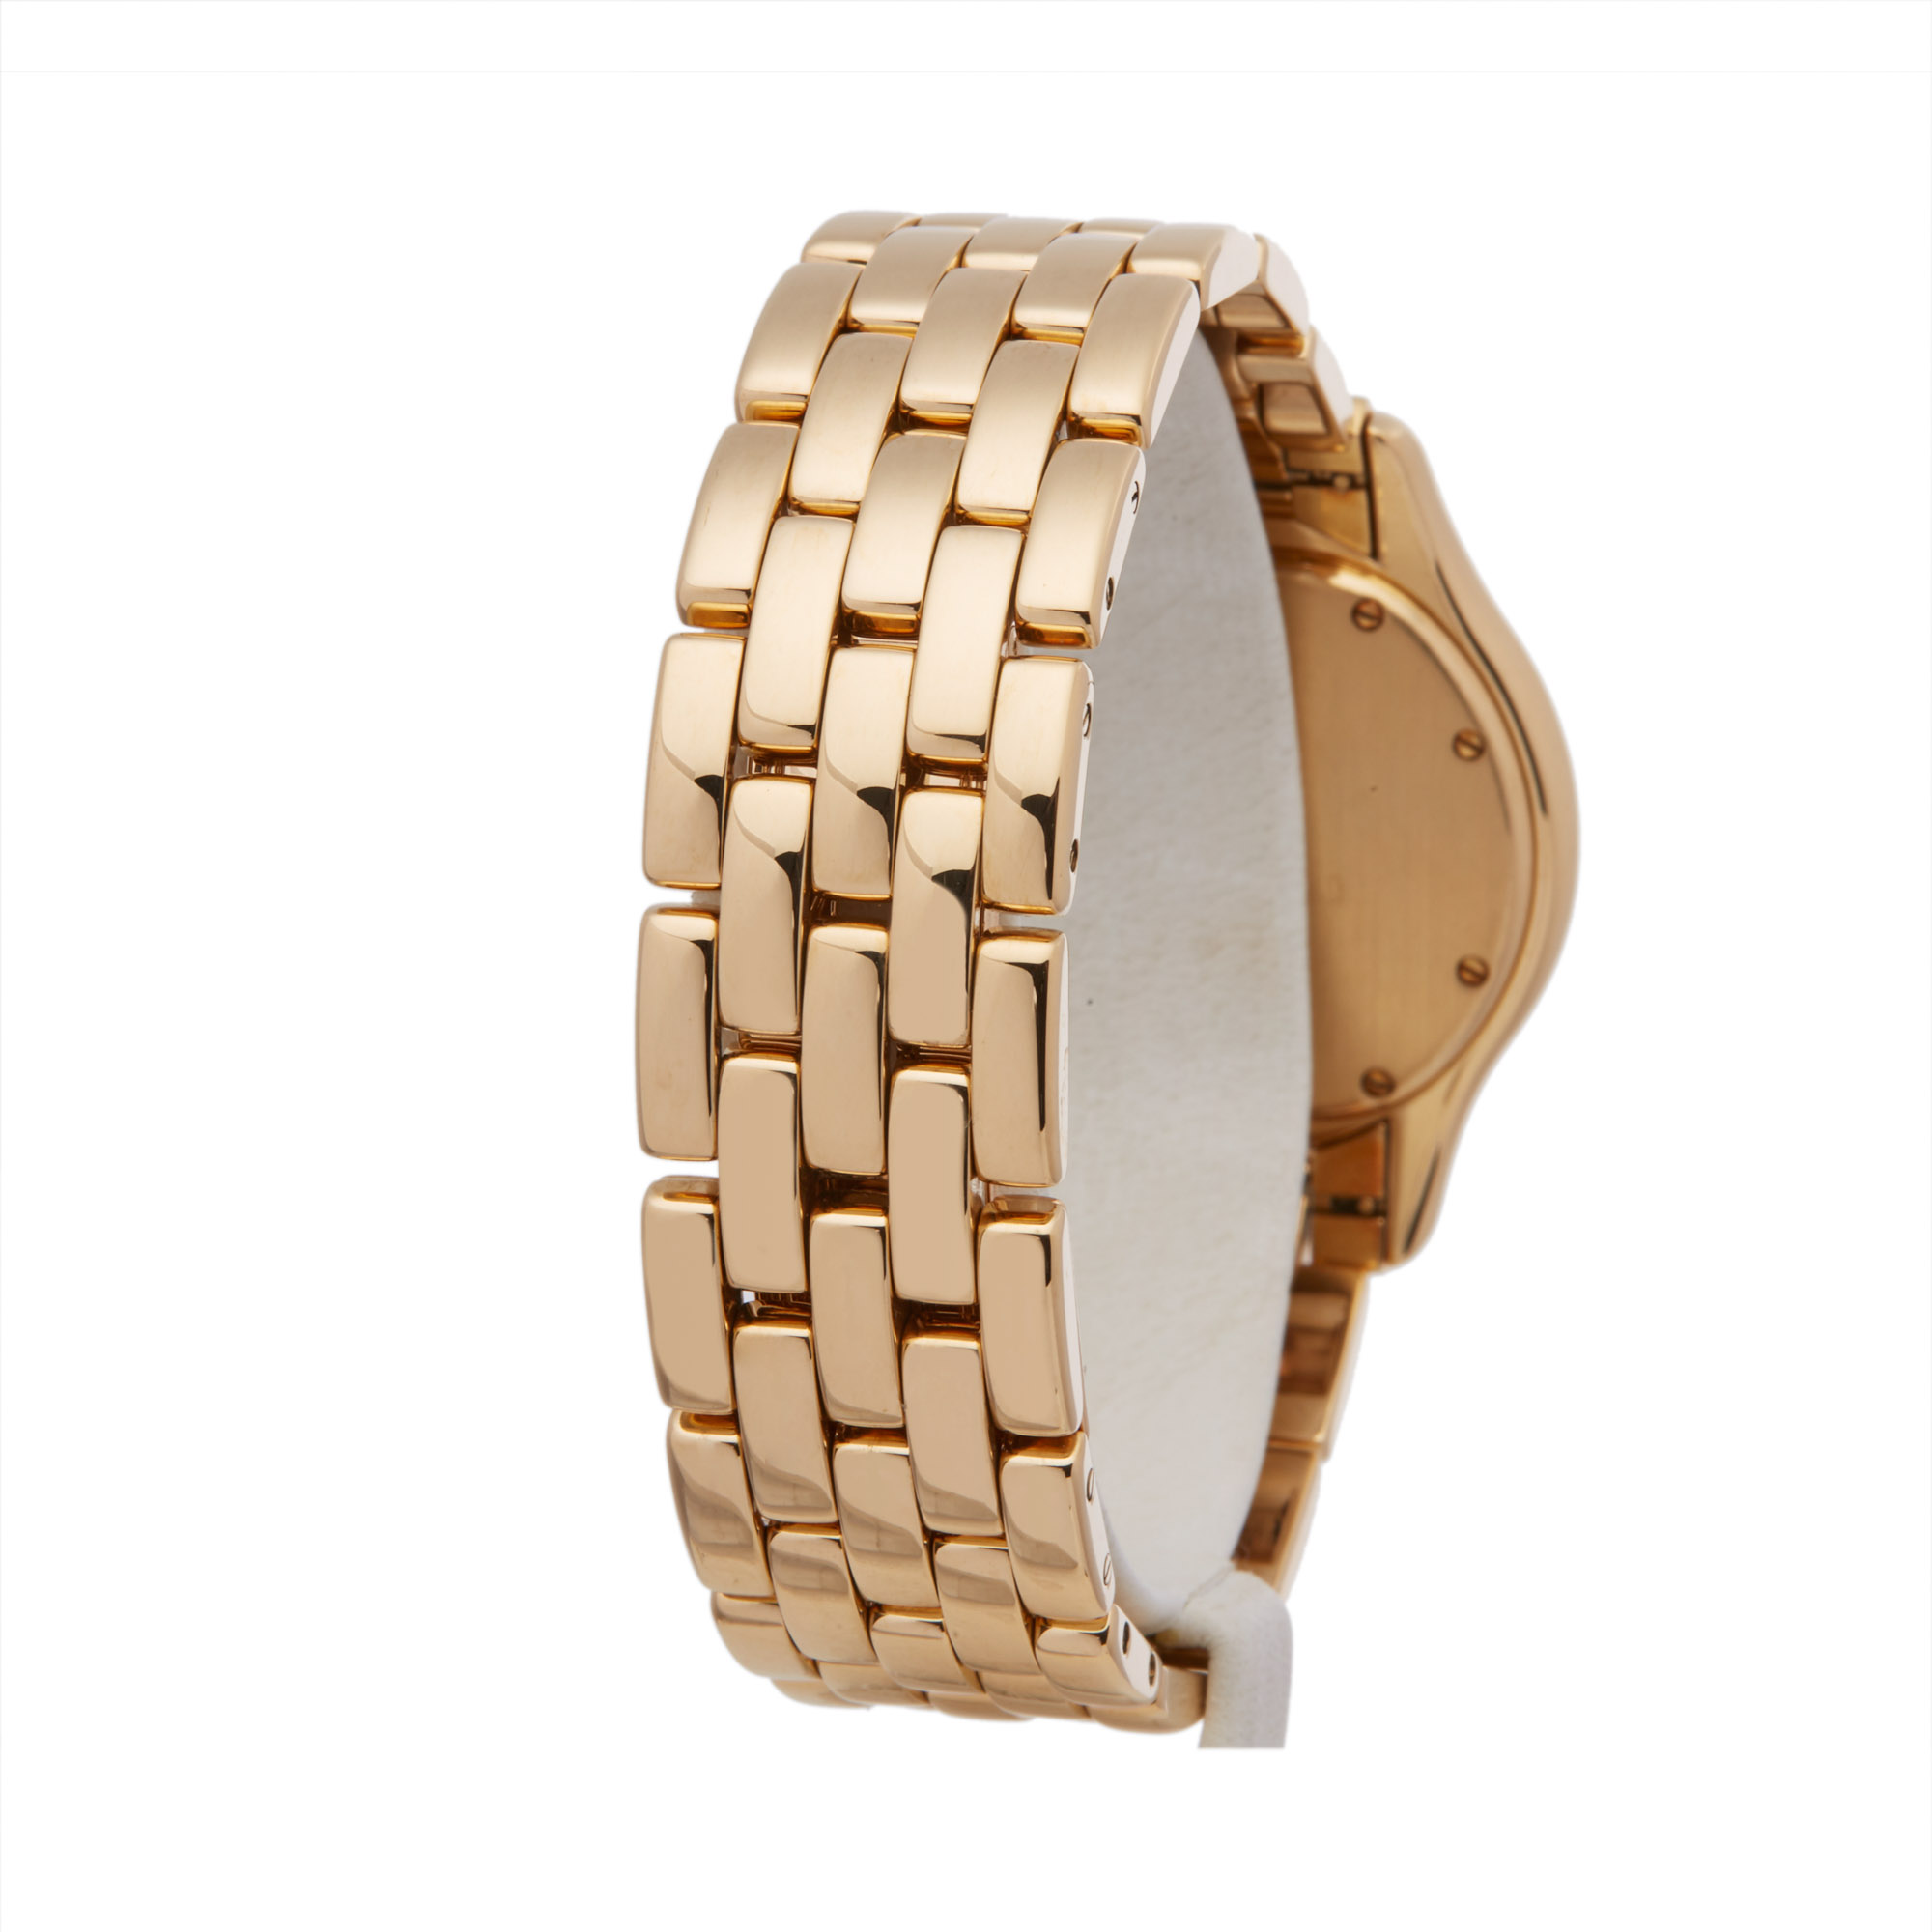 Cartier Panthère Cougar 116000R Unisex Yellow Gold Watch - Image 5 of 8